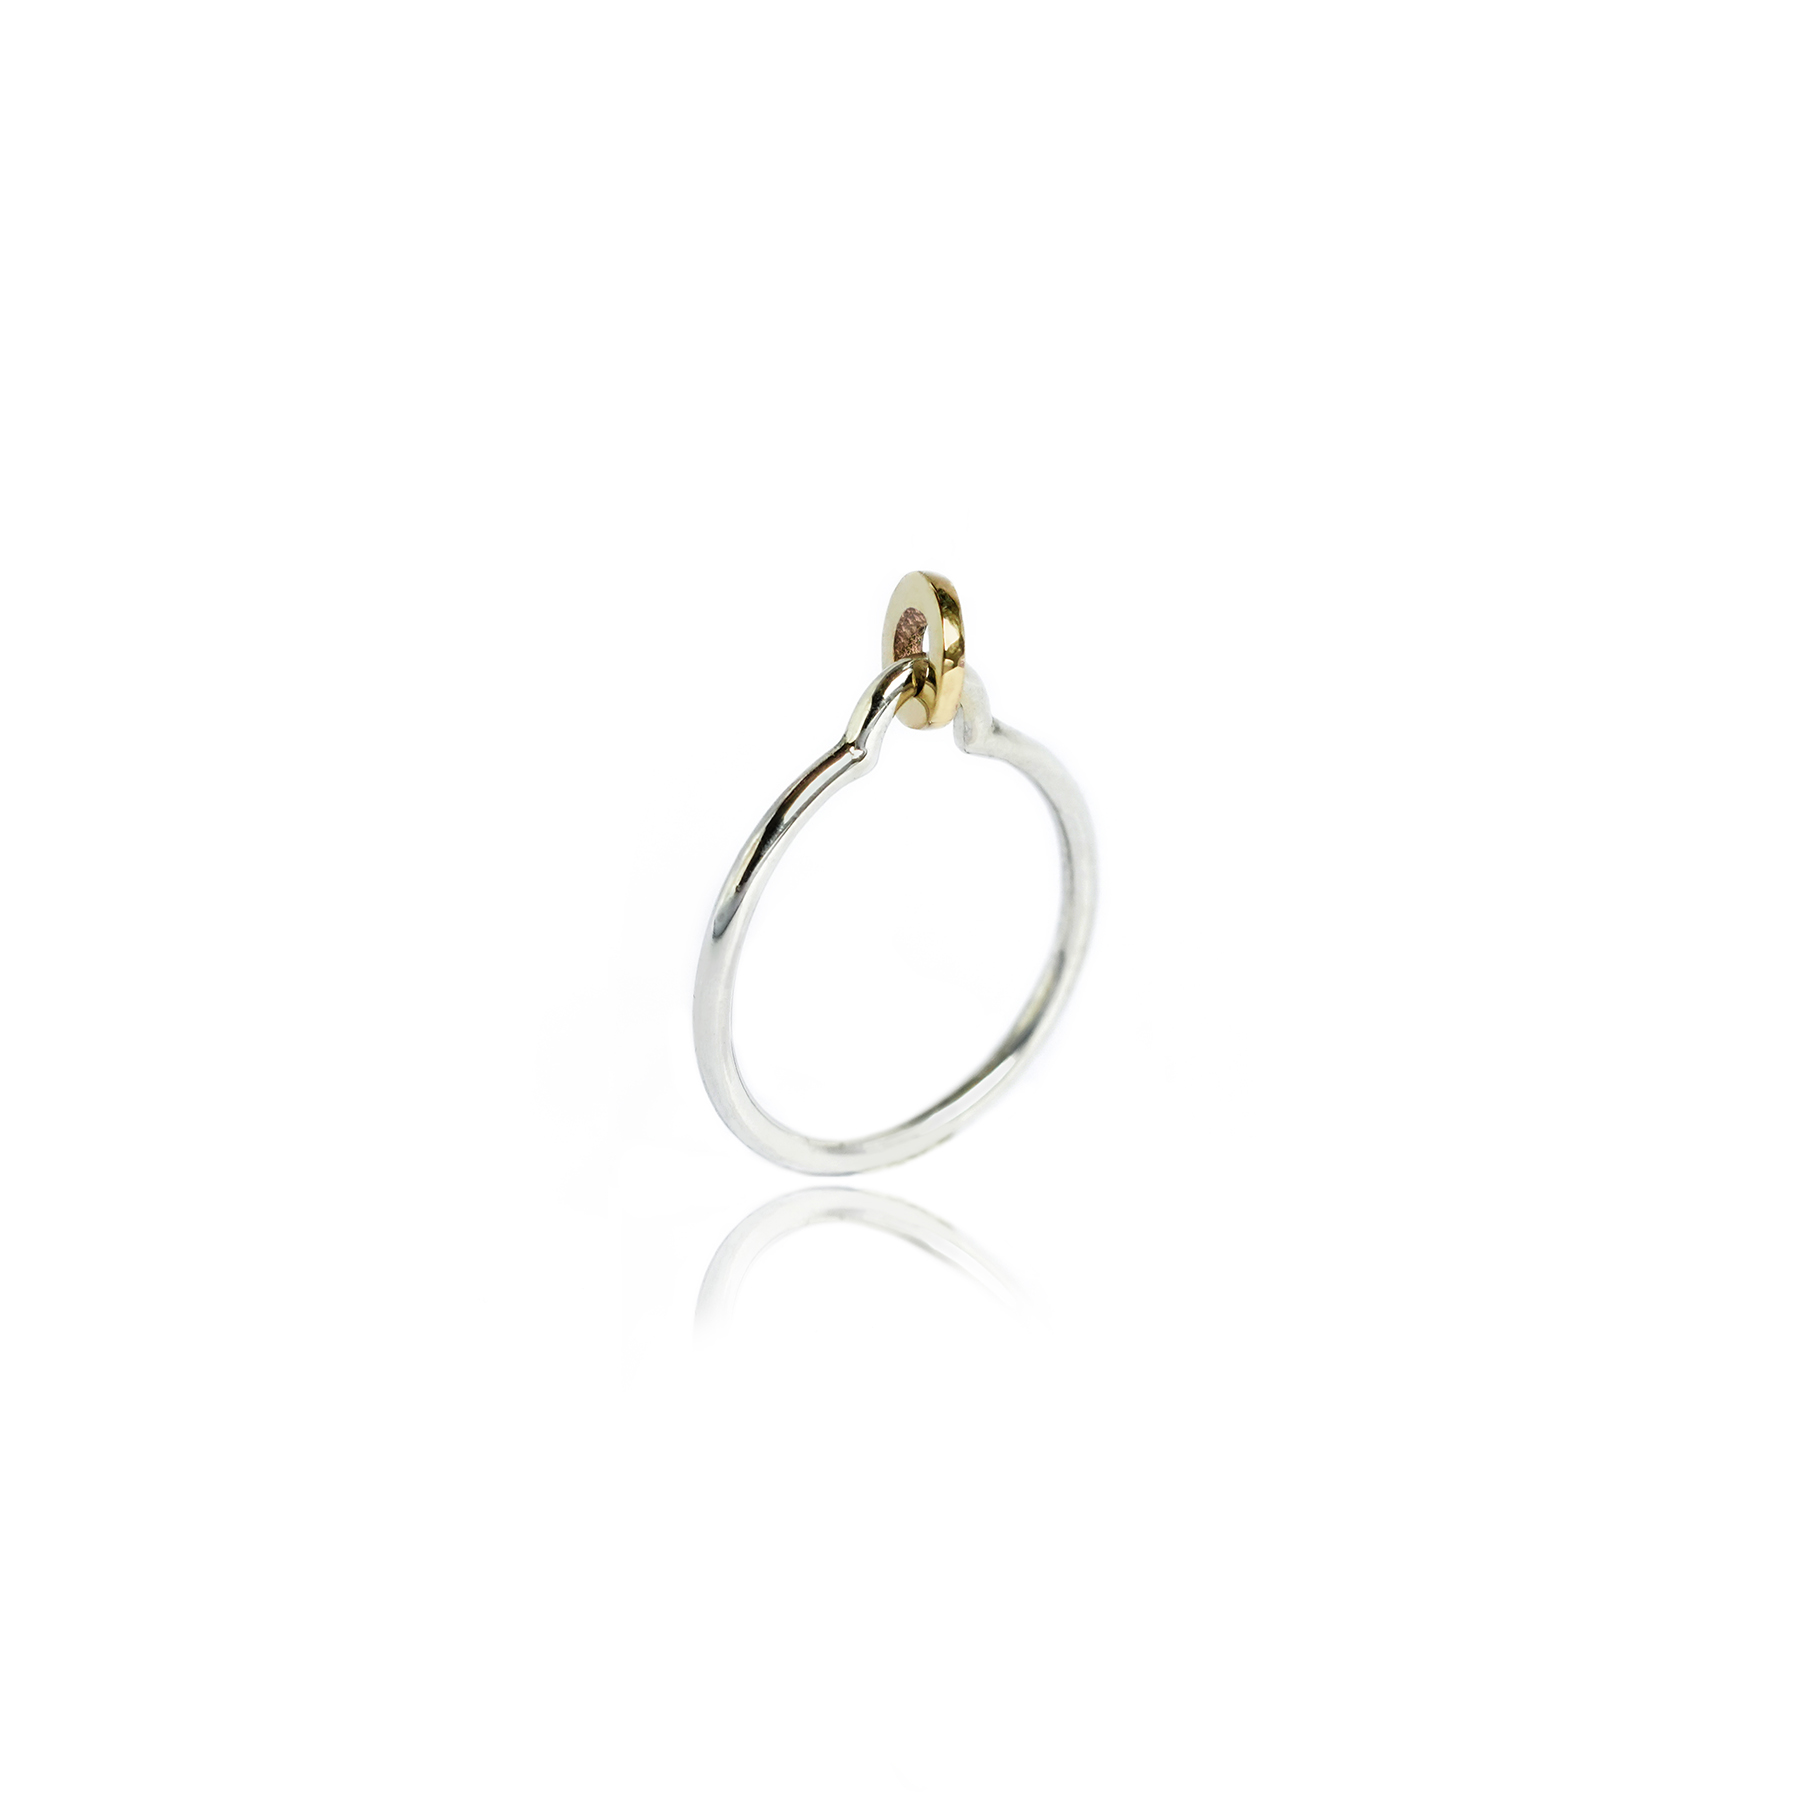 ST. PAUL RING by Adriana Chede Jewellery on curated-crowd.com